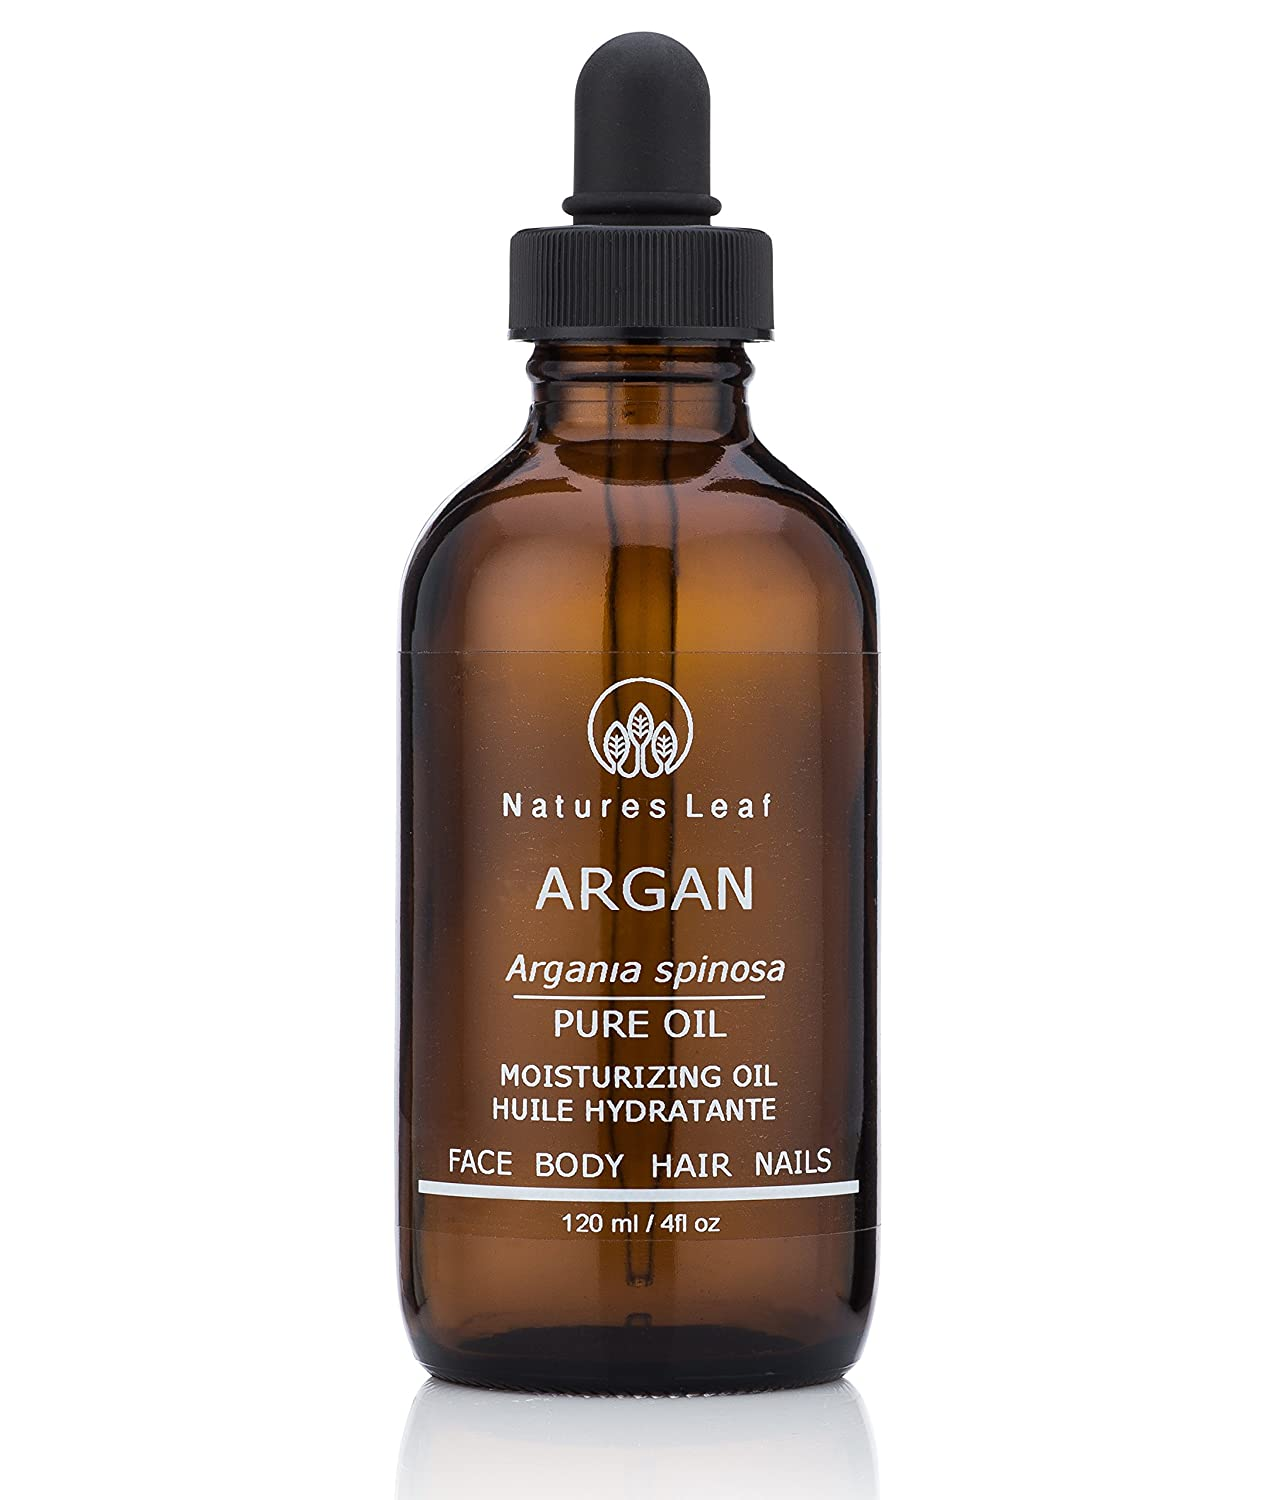 Natures Leaf Virgin Organic Moroccan Gold Argan Oil 100% Pure/Cold Pressed/Fair Trade/Unrefined/Anti-Aging/Split Ends/Frizzy's/Stretch Marks/Nails/Dry Scalp/Non-Irritating